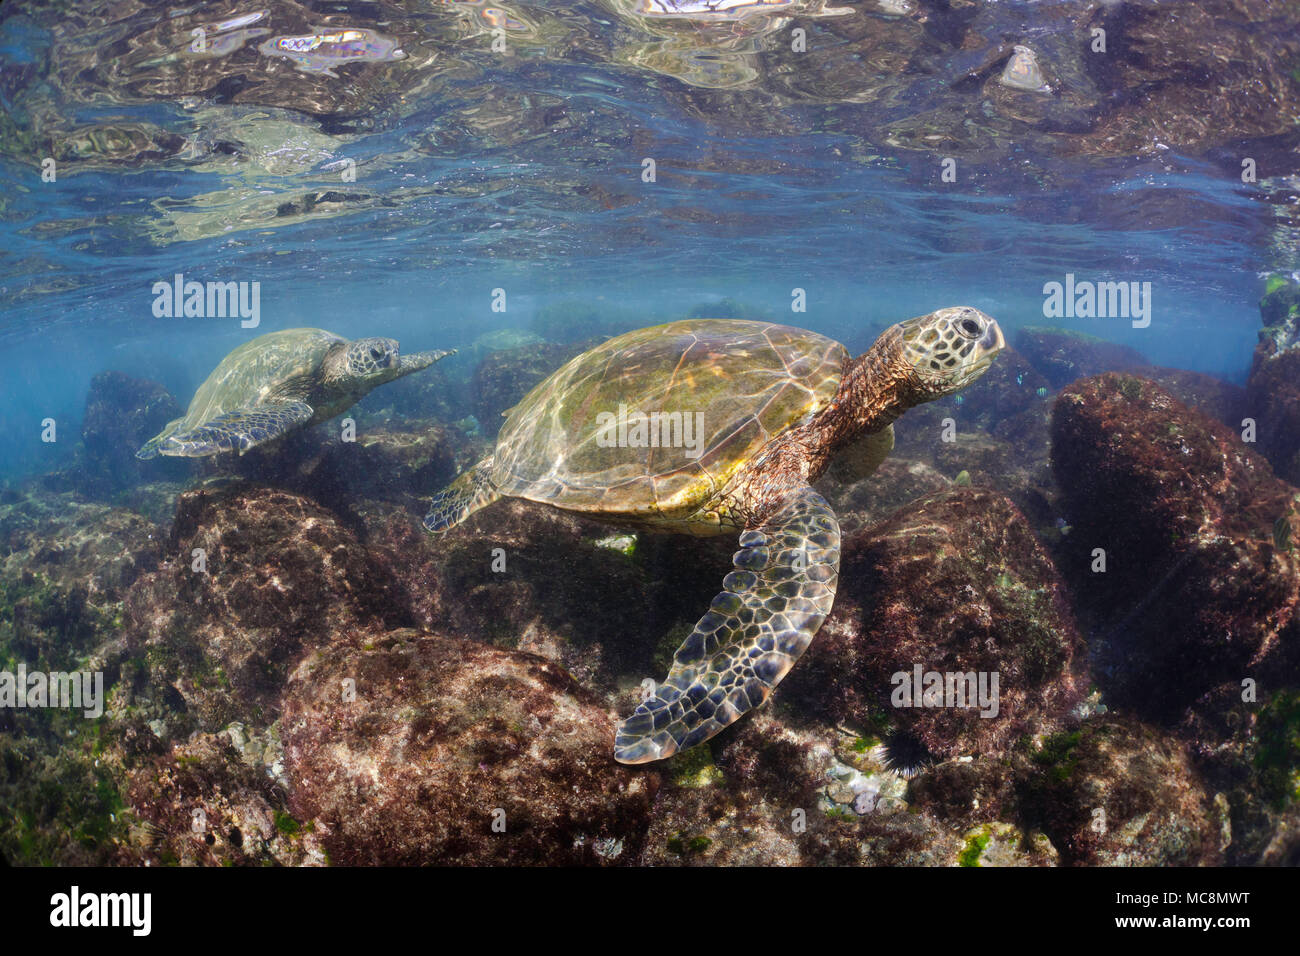 Green sea turtles, Chelonia mydas, an endangered species, search the shallows off Maui, Hawaii for algae to feed on. - Stock Image